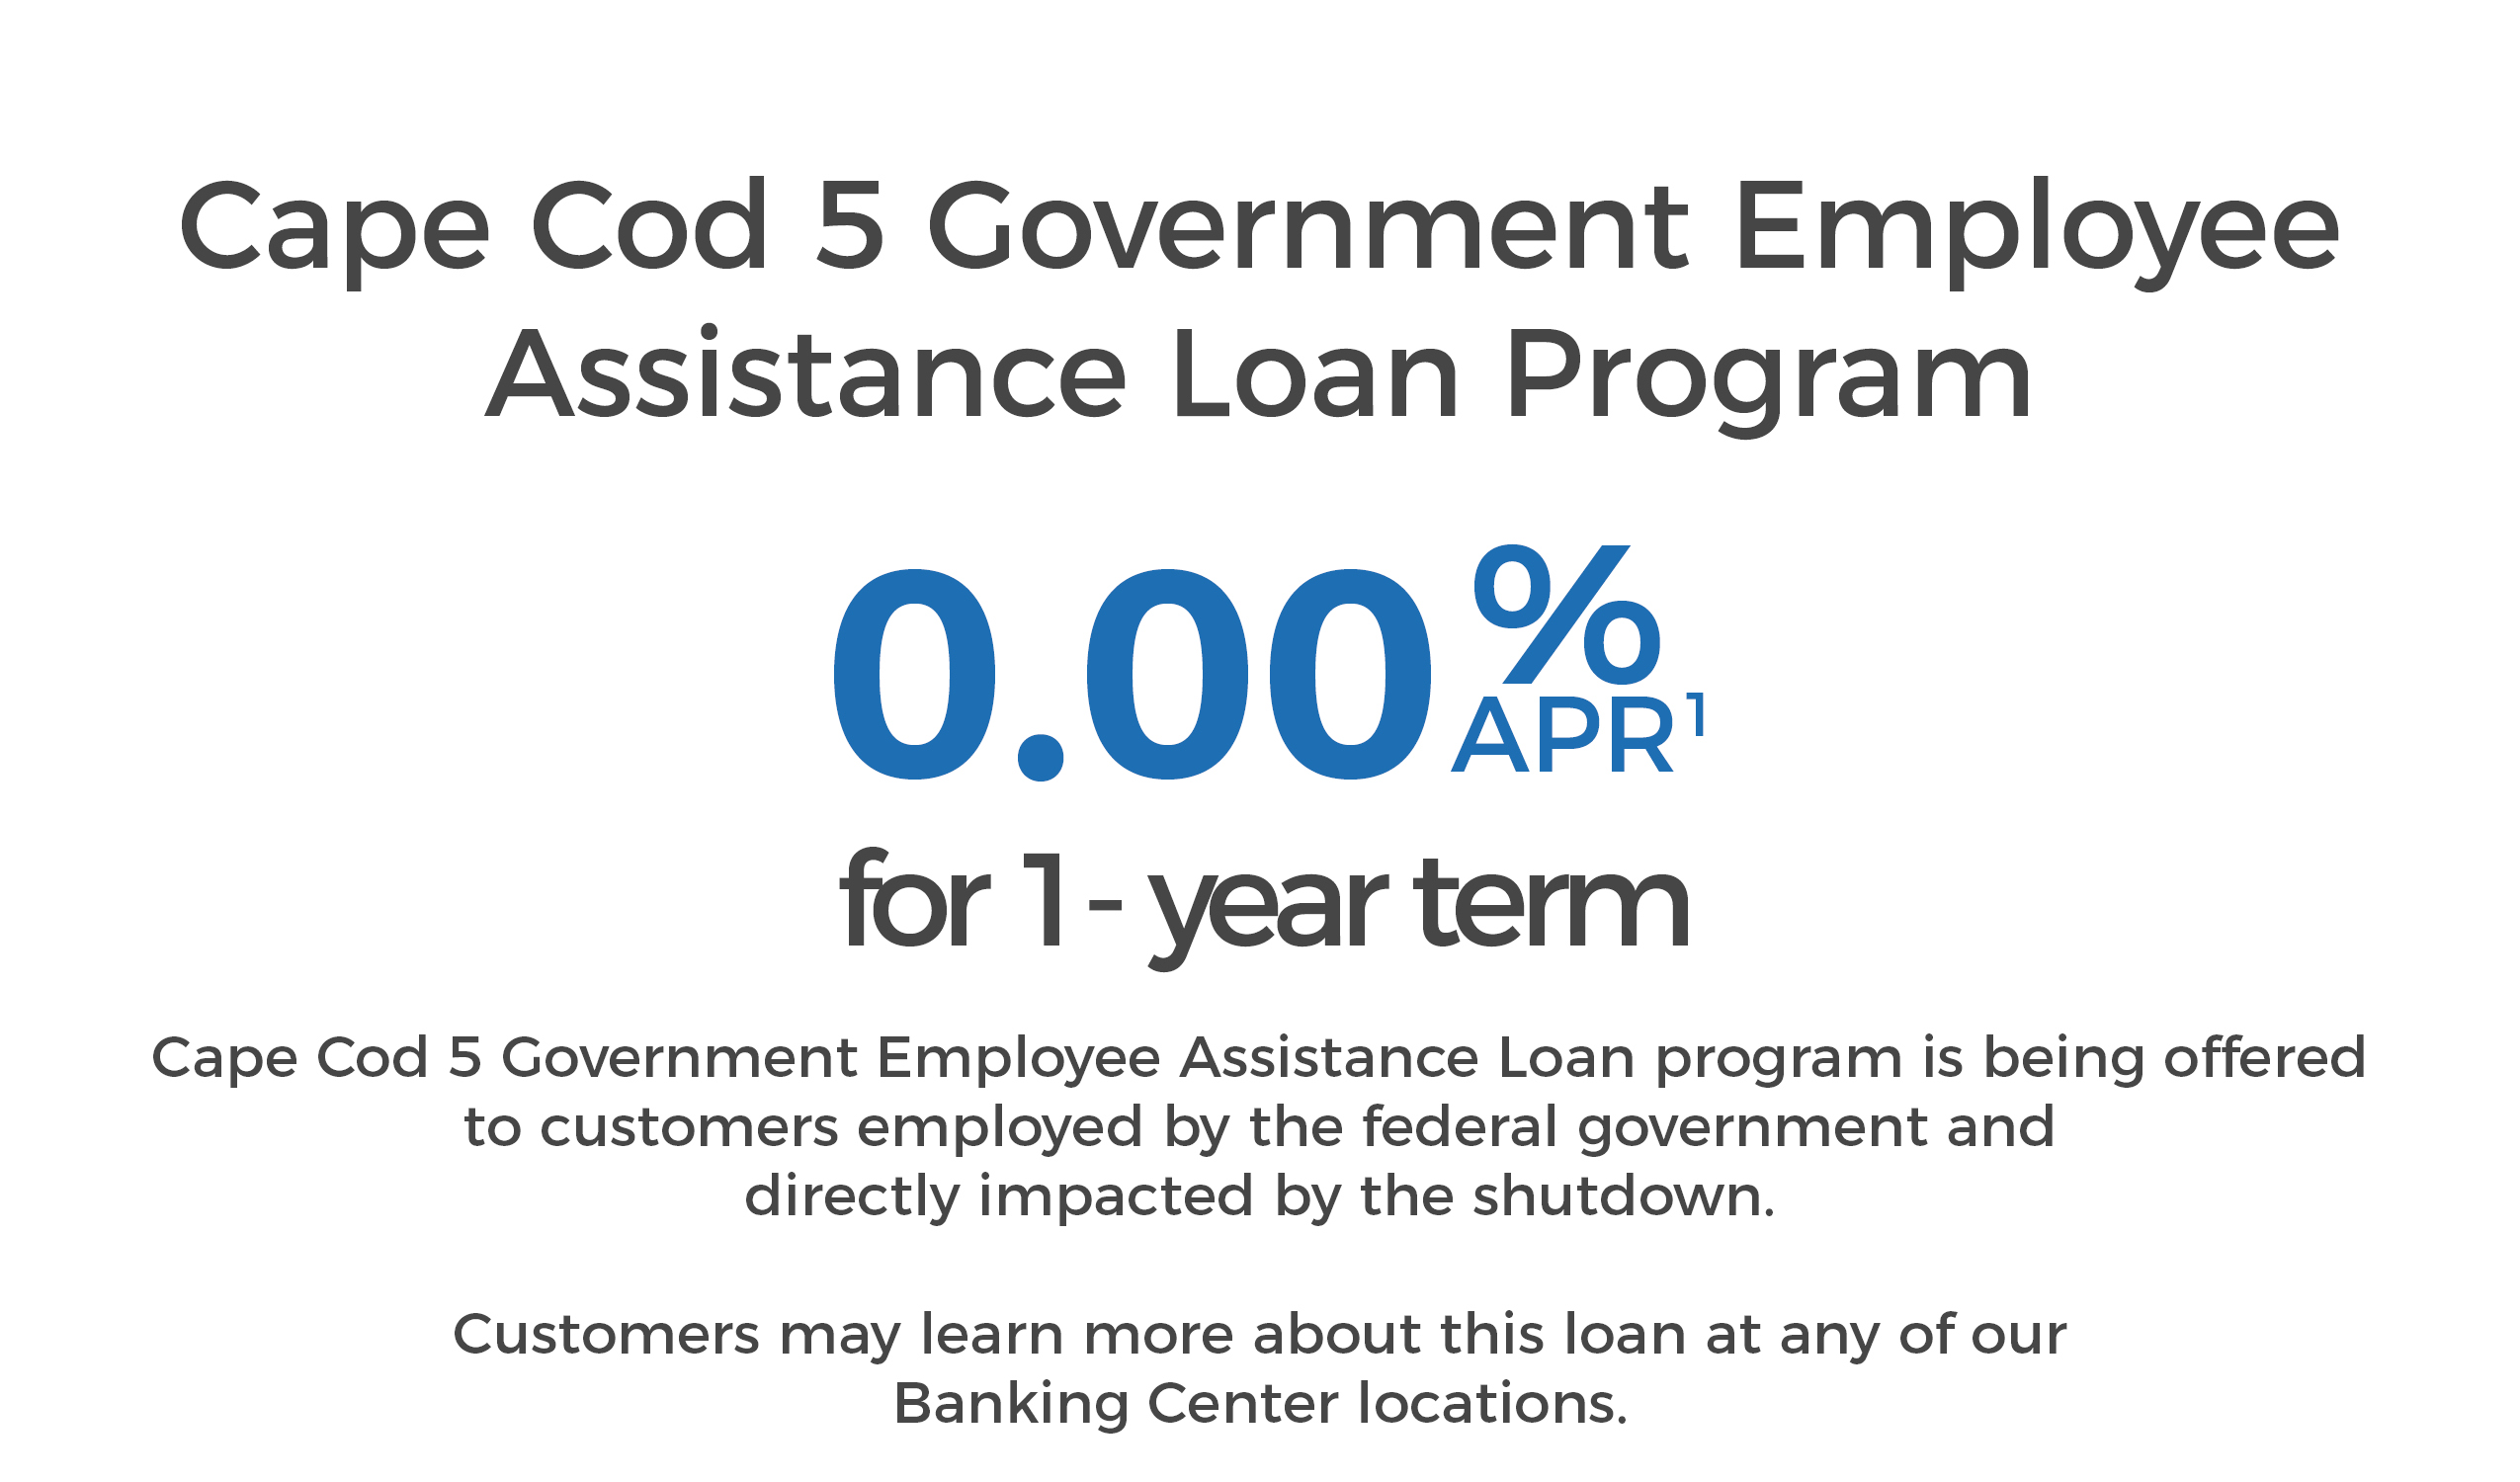 Cape Cod 5 Government Shutdown Employee Assistance Program Loan 1 year term at 0.00% APR